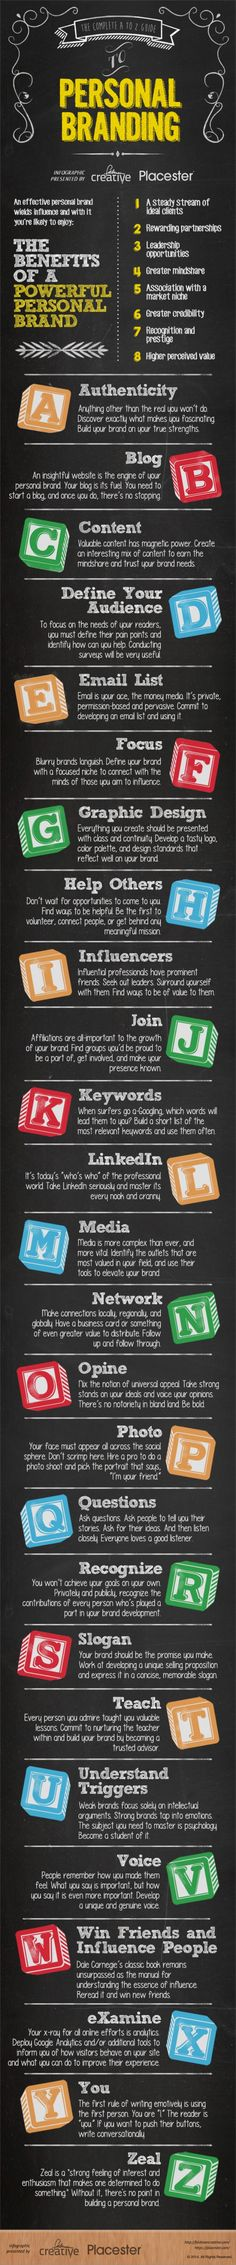 The Complete A to Z Guide to Personal Branding by Placester via slideshare